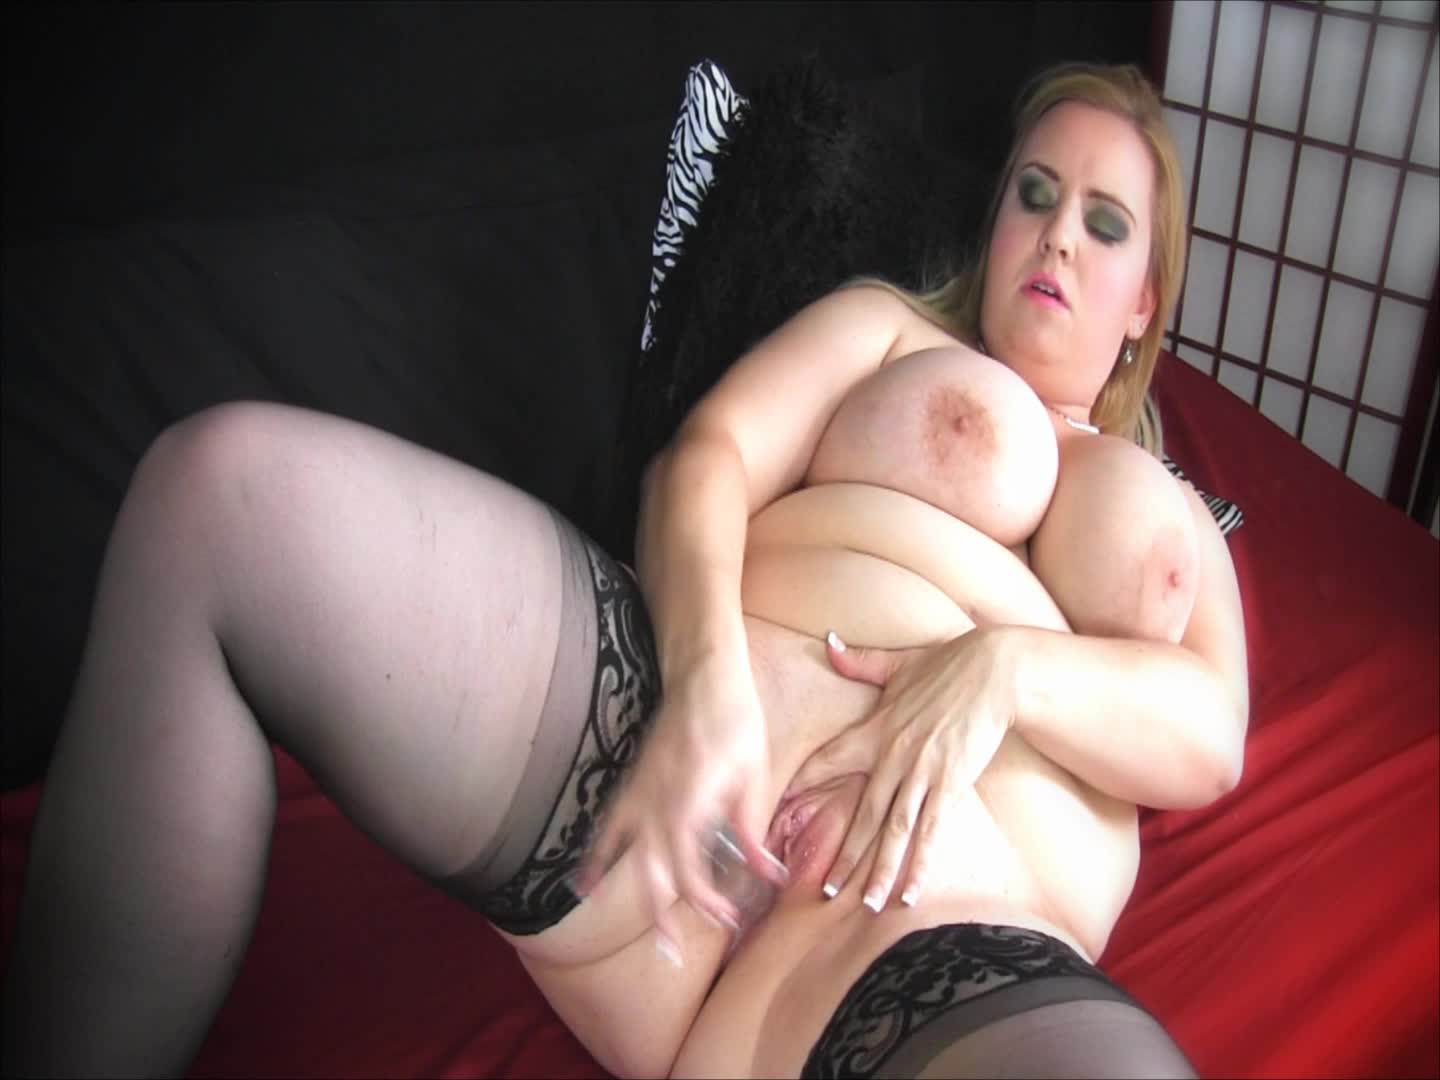 Manyvids - Hottest Vids From Your Favorite Content Creators-9034